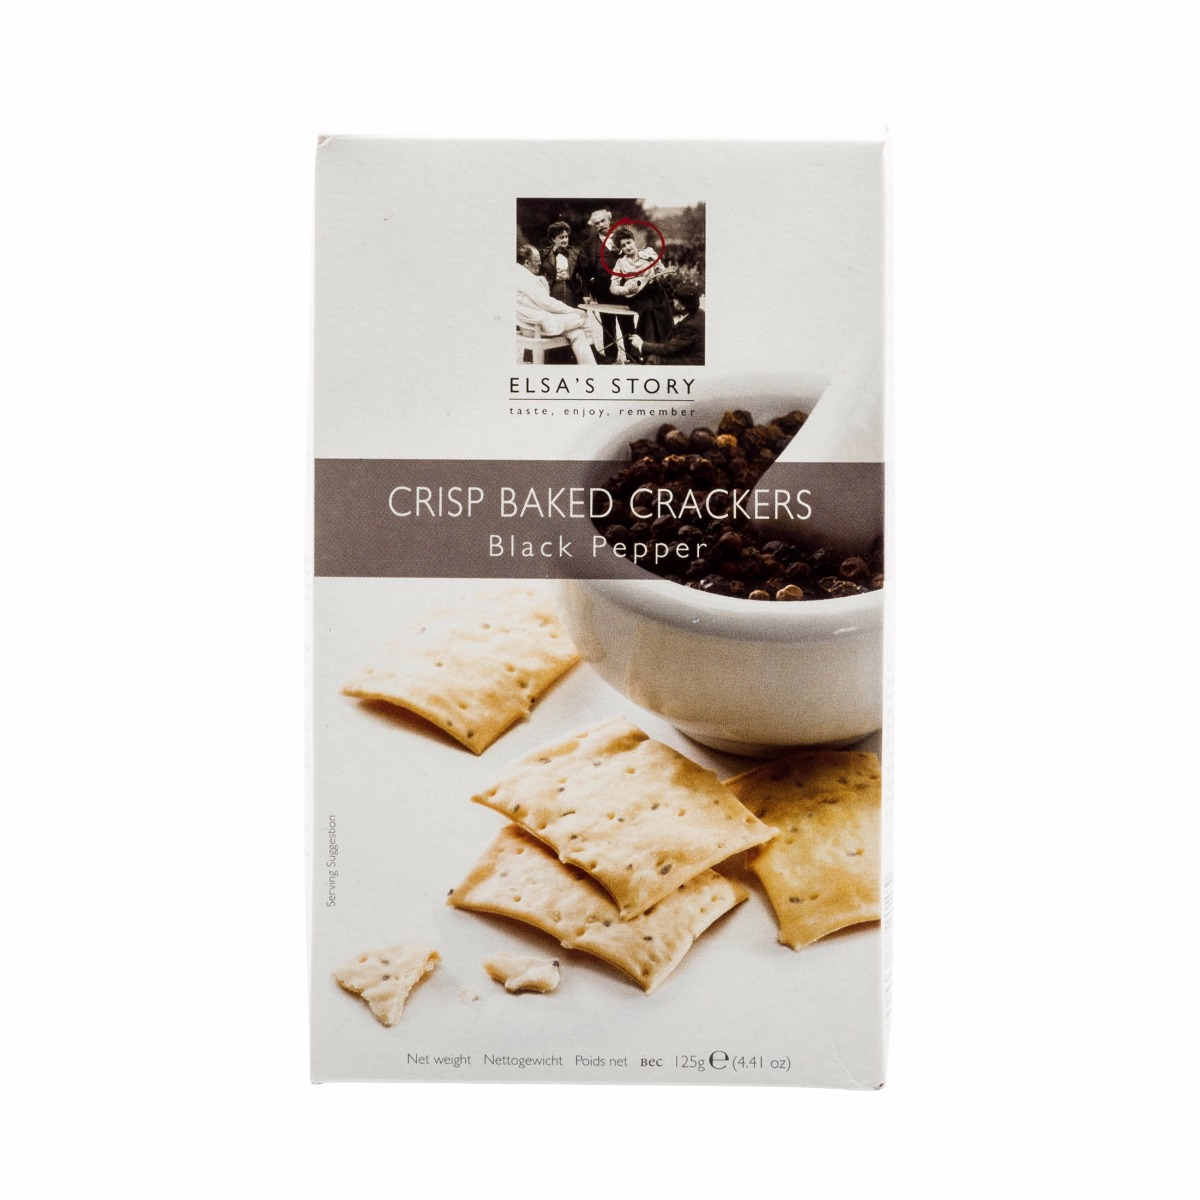 BLACK PEPPER CRISPS